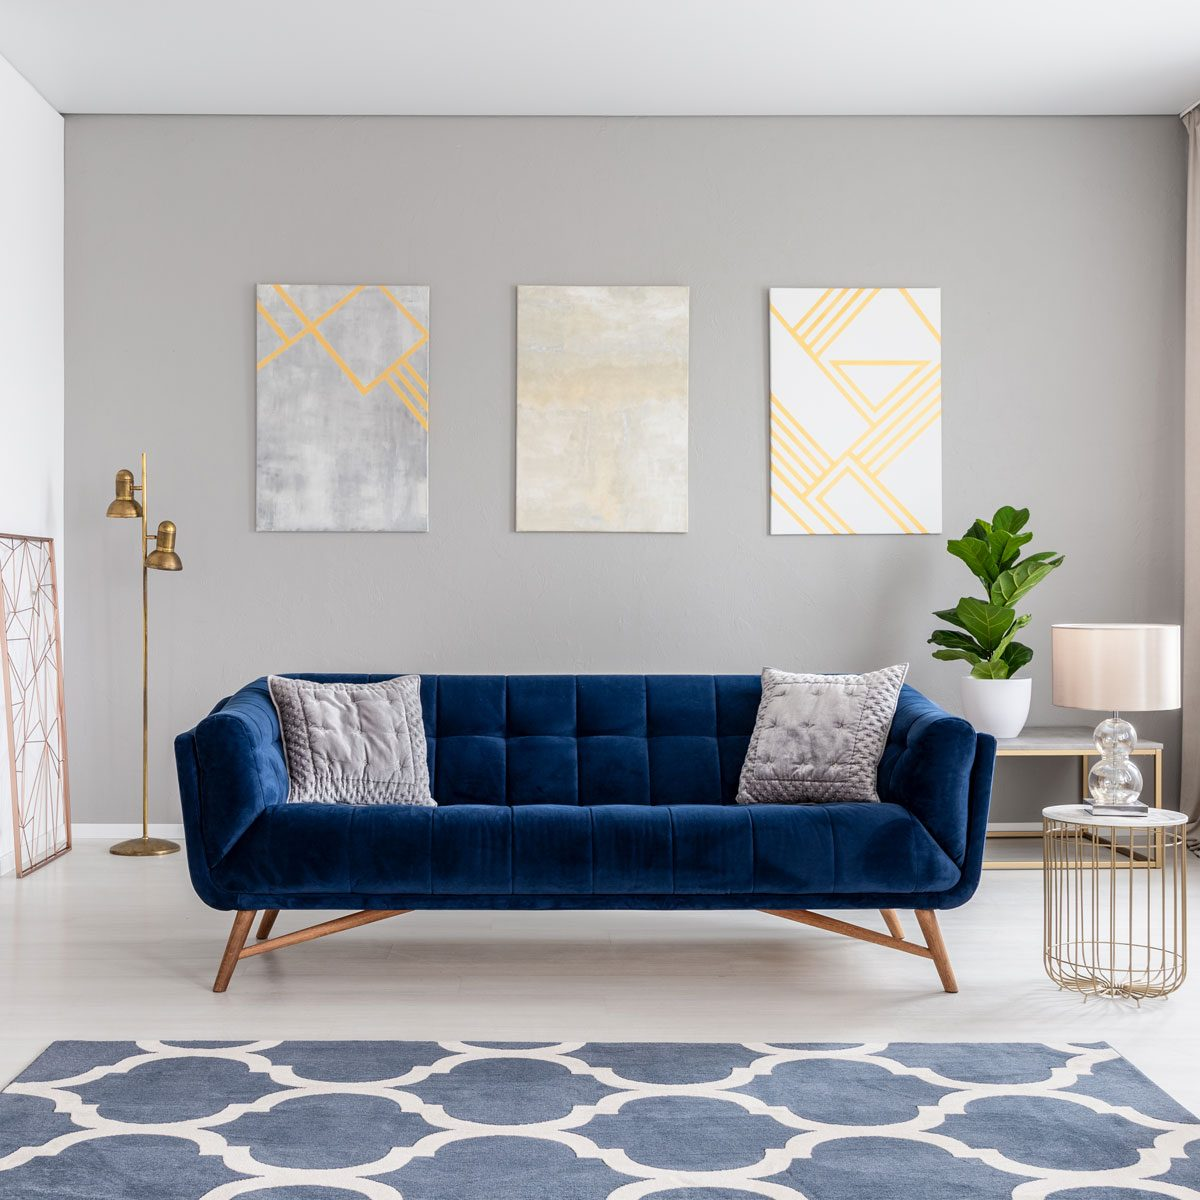 navy blue sofa in the middle of a bright living room interior with gold metal side tables and three paintings on a gray wall couch pillows